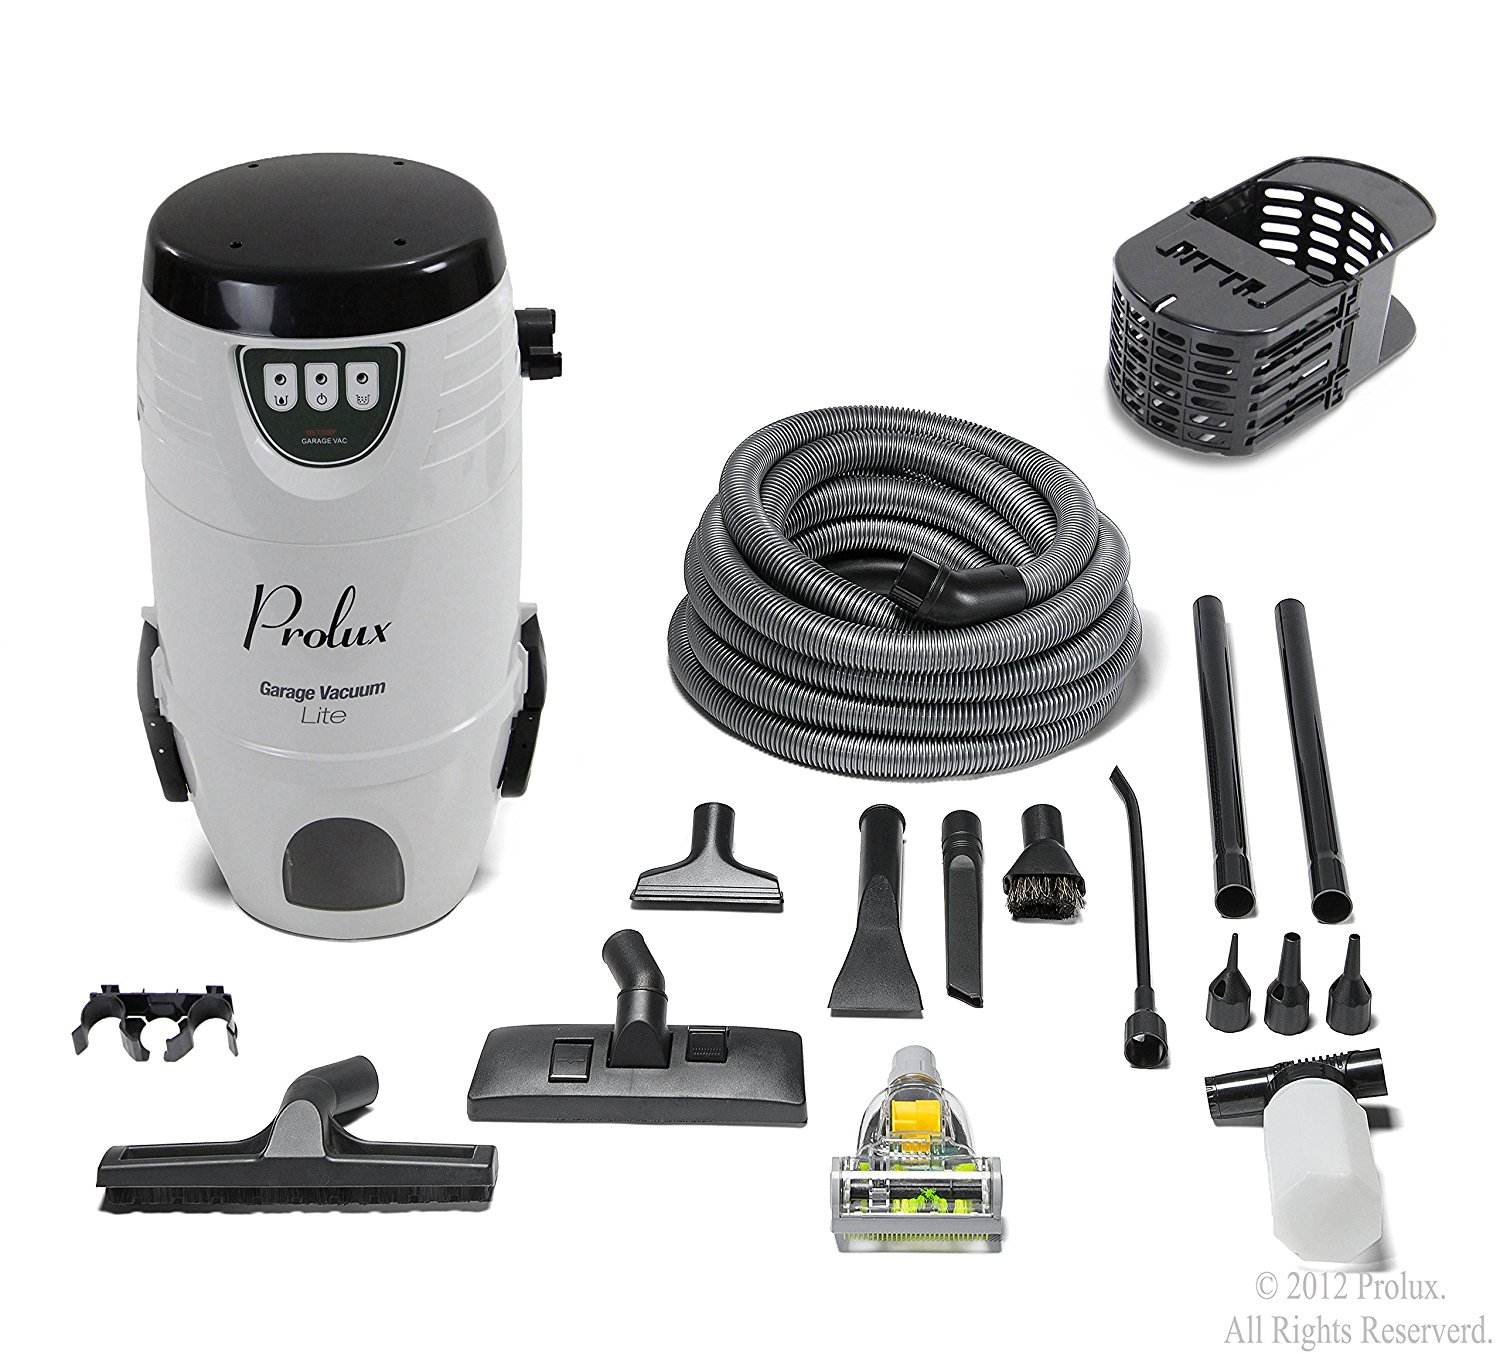 Prolux LITE Wet Dry Garage Shop Vacuum Vac